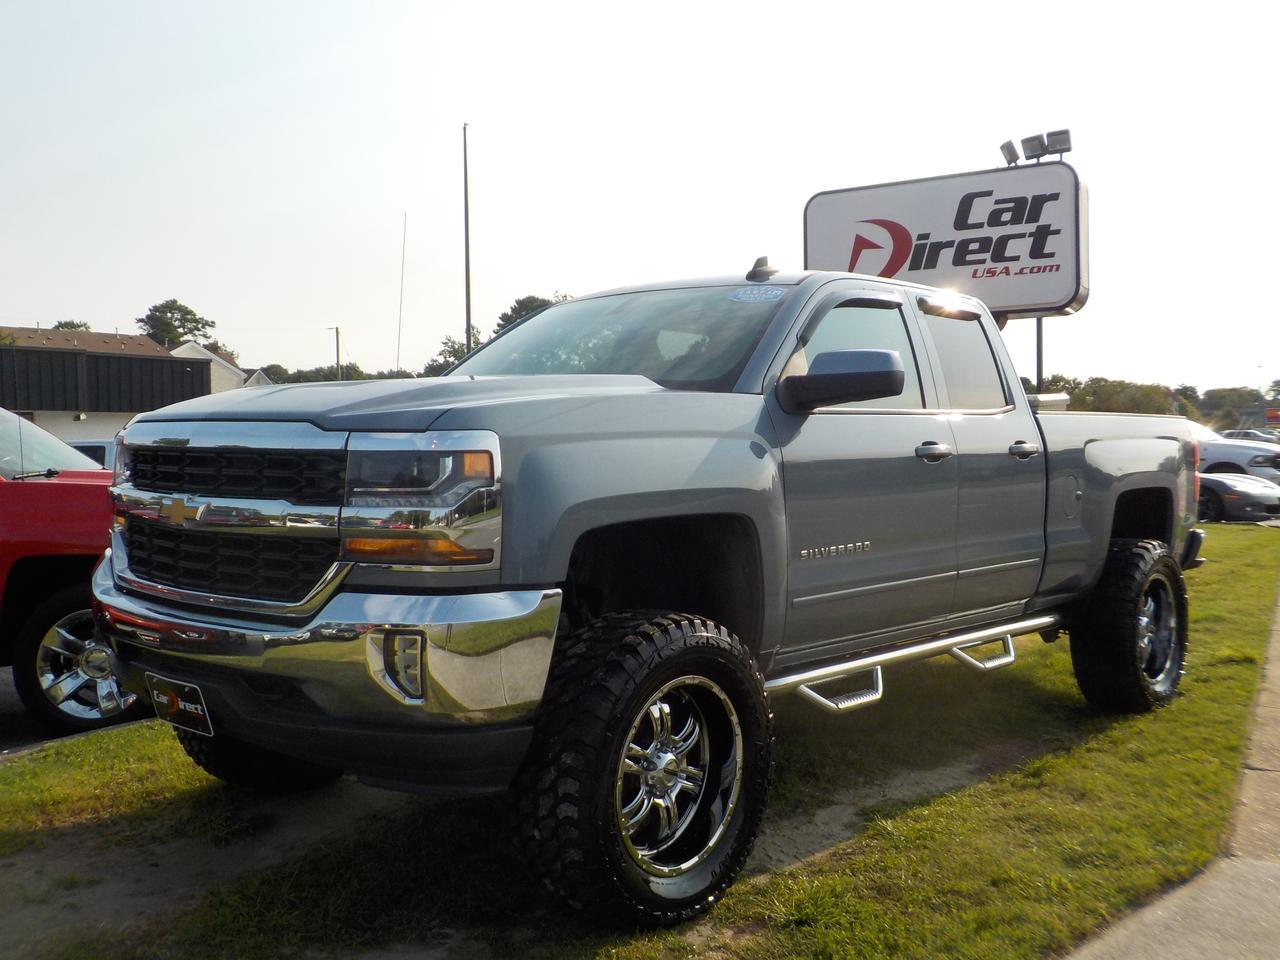 2016 CHEVROLET SILVERADO LT DOUBLE CAB 4X4, BLUETOOTH, AUX/USB PORT, RUNNING BOARDS, TOW PKG, SIRIUS RADIO, BACKUP CAM! Virginia Beach VA